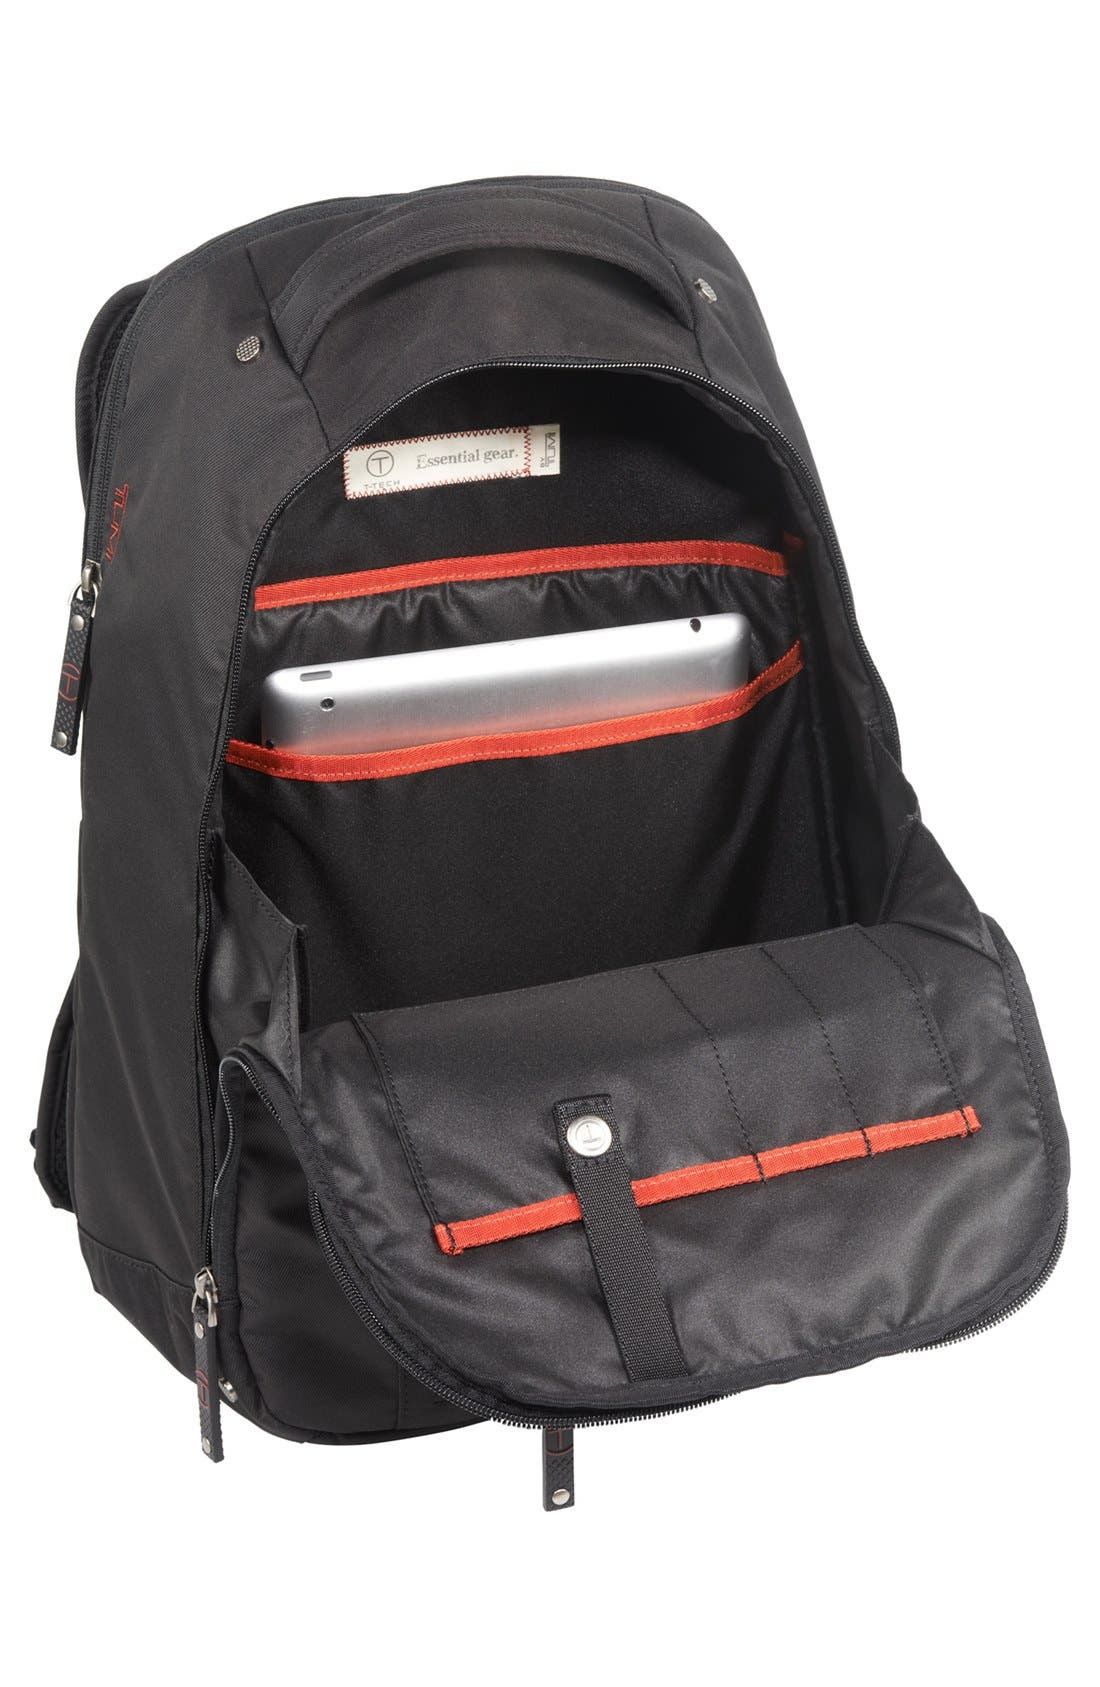 TUMI,                             T-Tech by Tumi 'Icon - Marley' Backpack,                             Alternate thumbnail 6, color,                             002